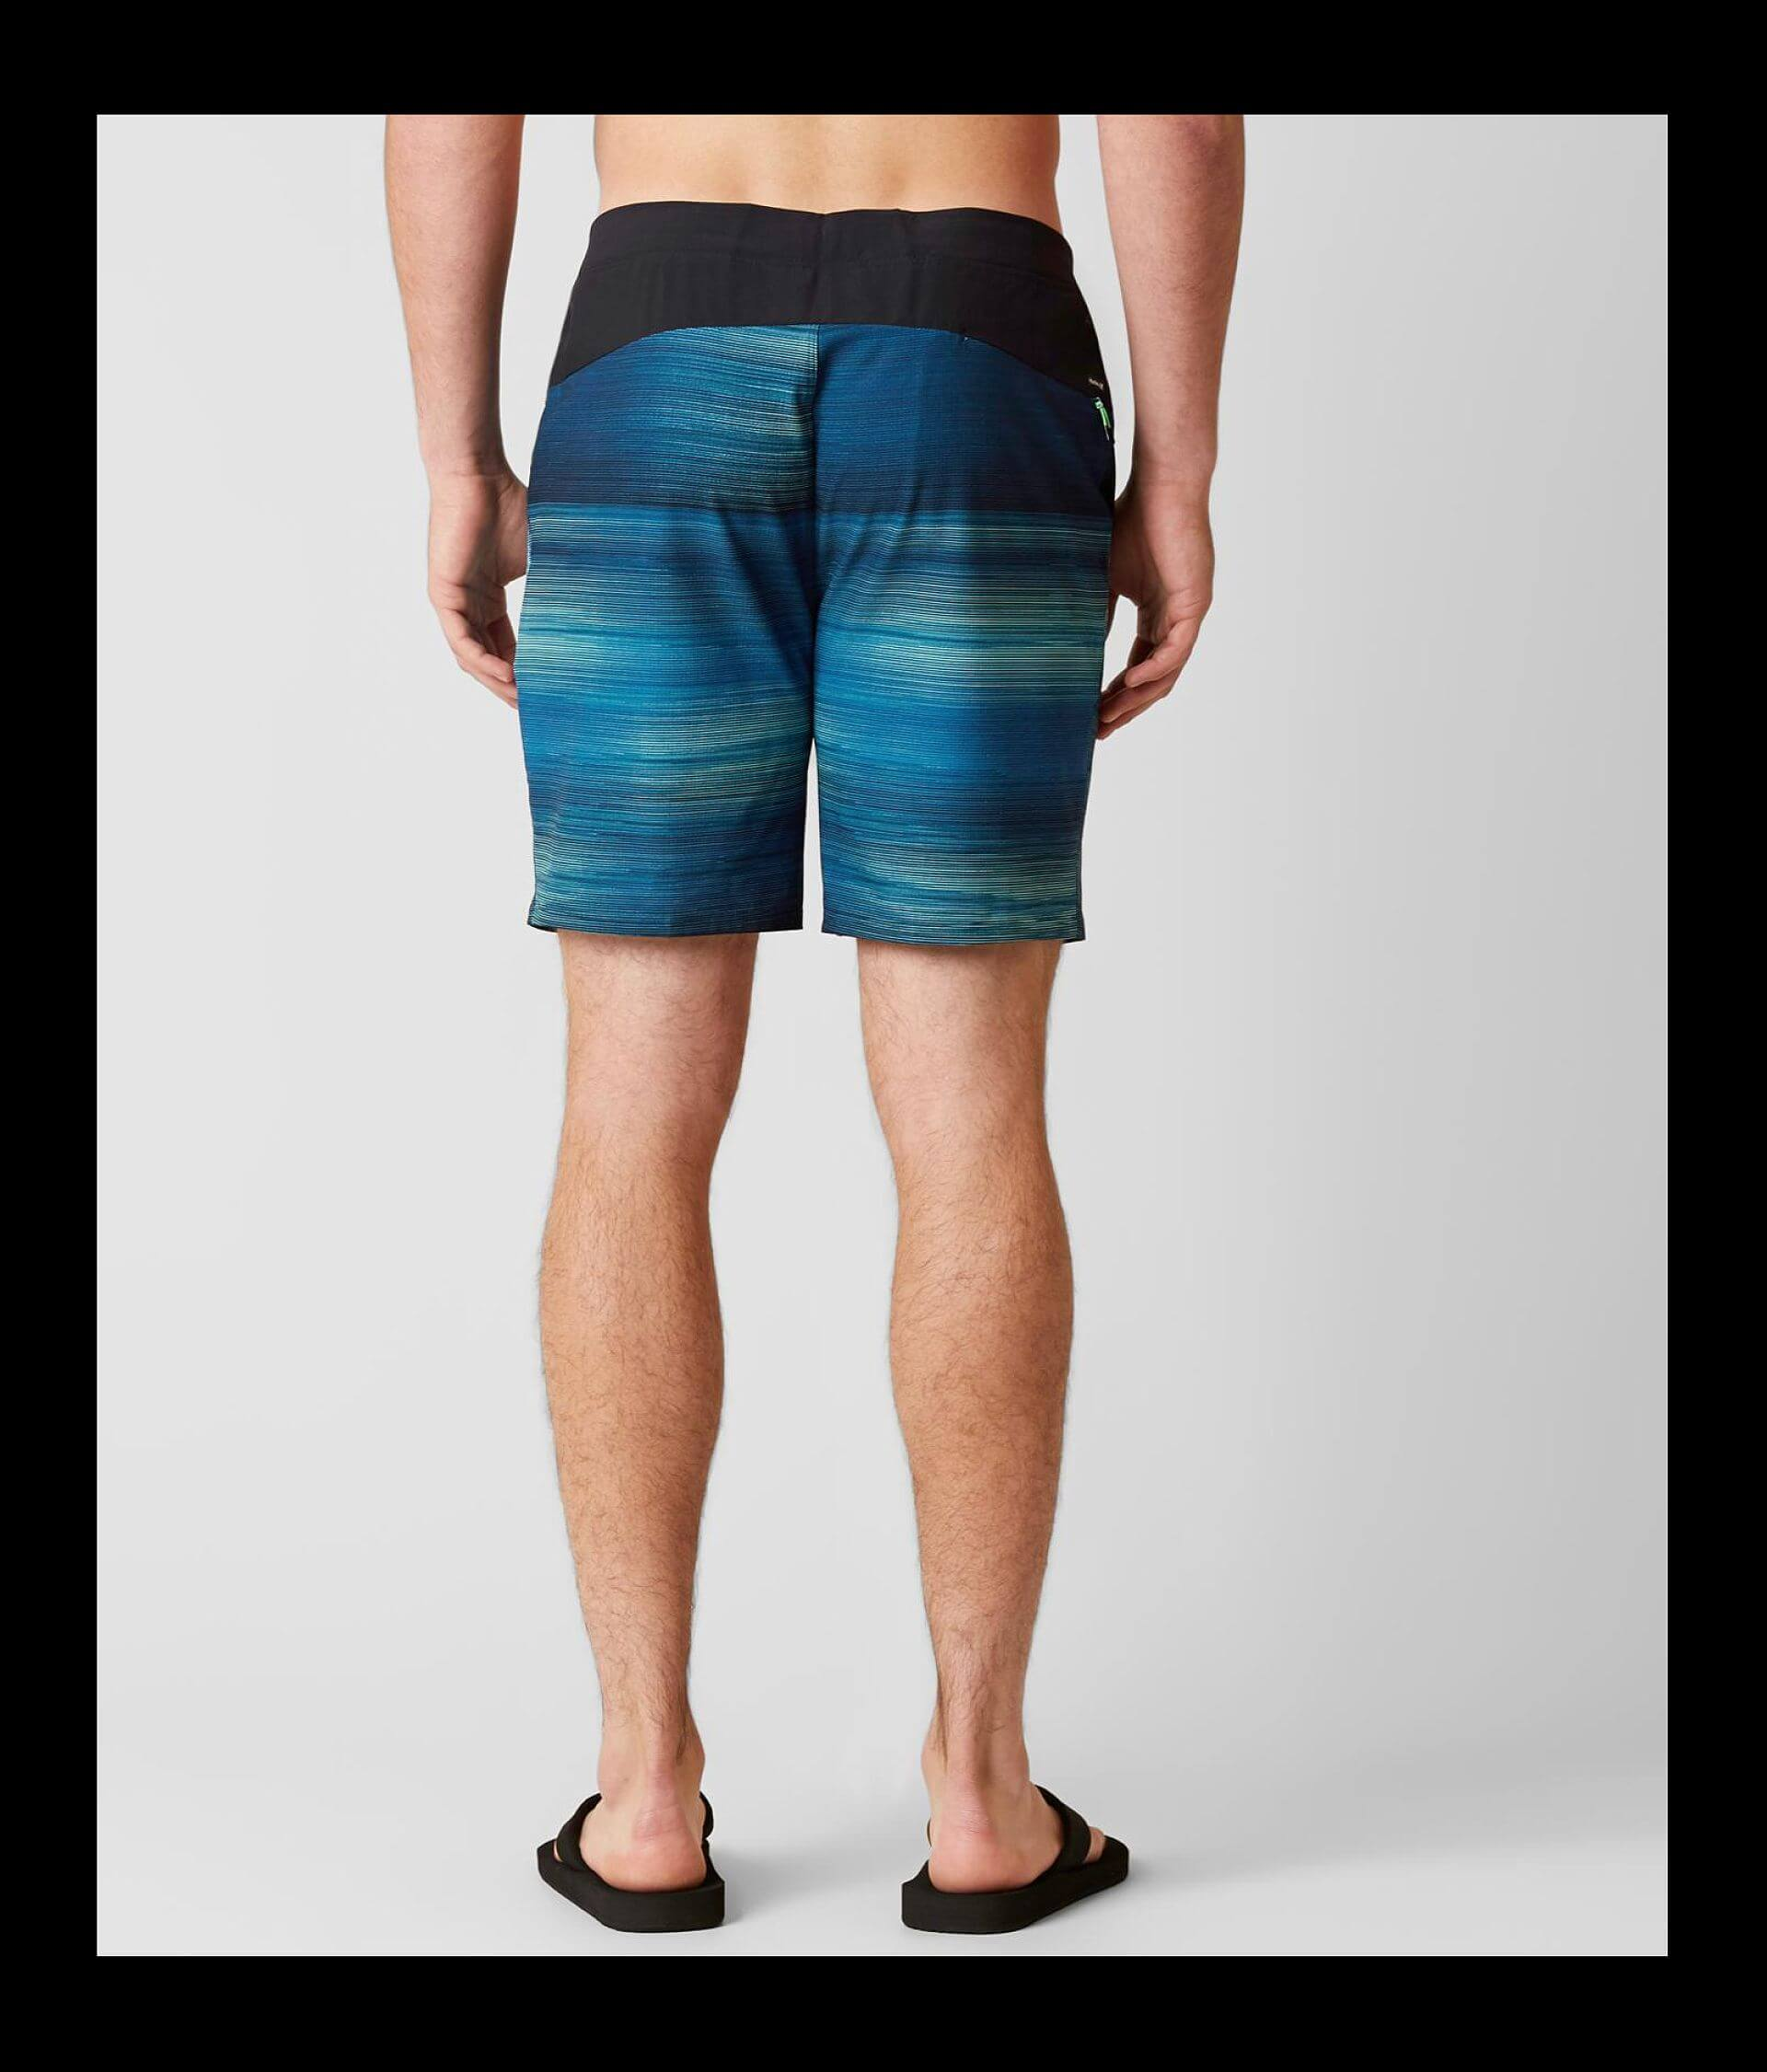 99392e7532 Hurley Alpha Trainer Stretch Boardshort - Men's Boardshorts in Space ...